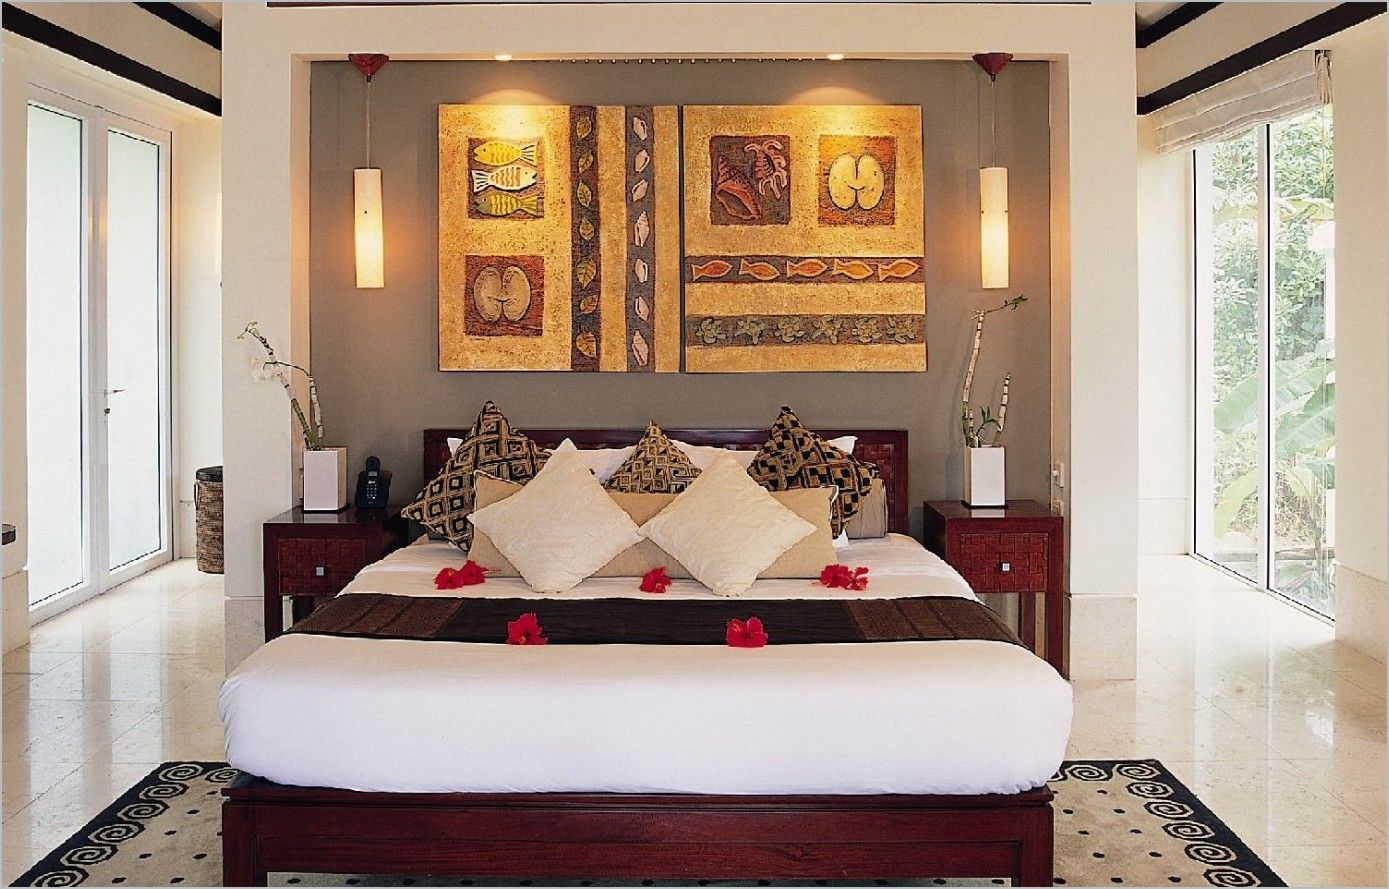 Bedroom Decoration Pictures In India Indian Style Bedrooms Indian Bedroom Contemporary Bedroom Design